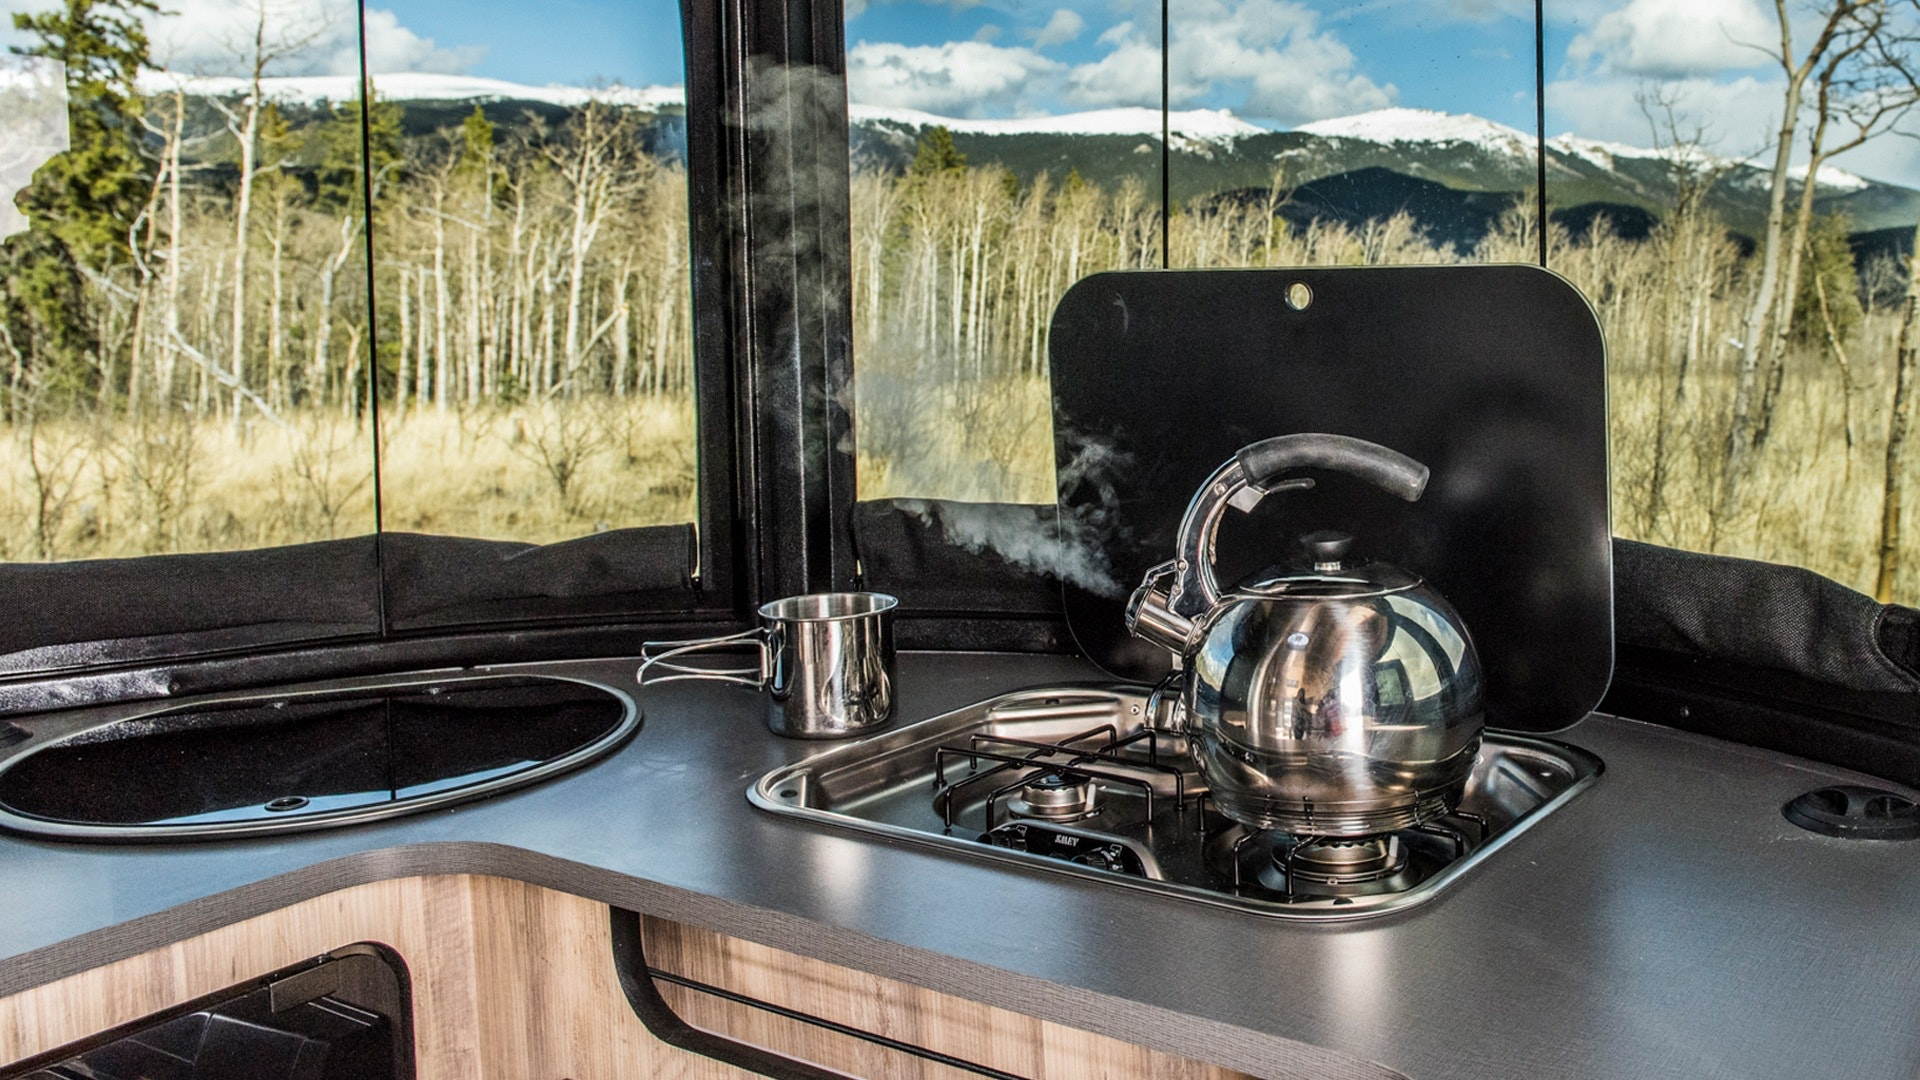 Basecamp-Sub-Features-SimpleContent-Kitchen-2-SinkStove